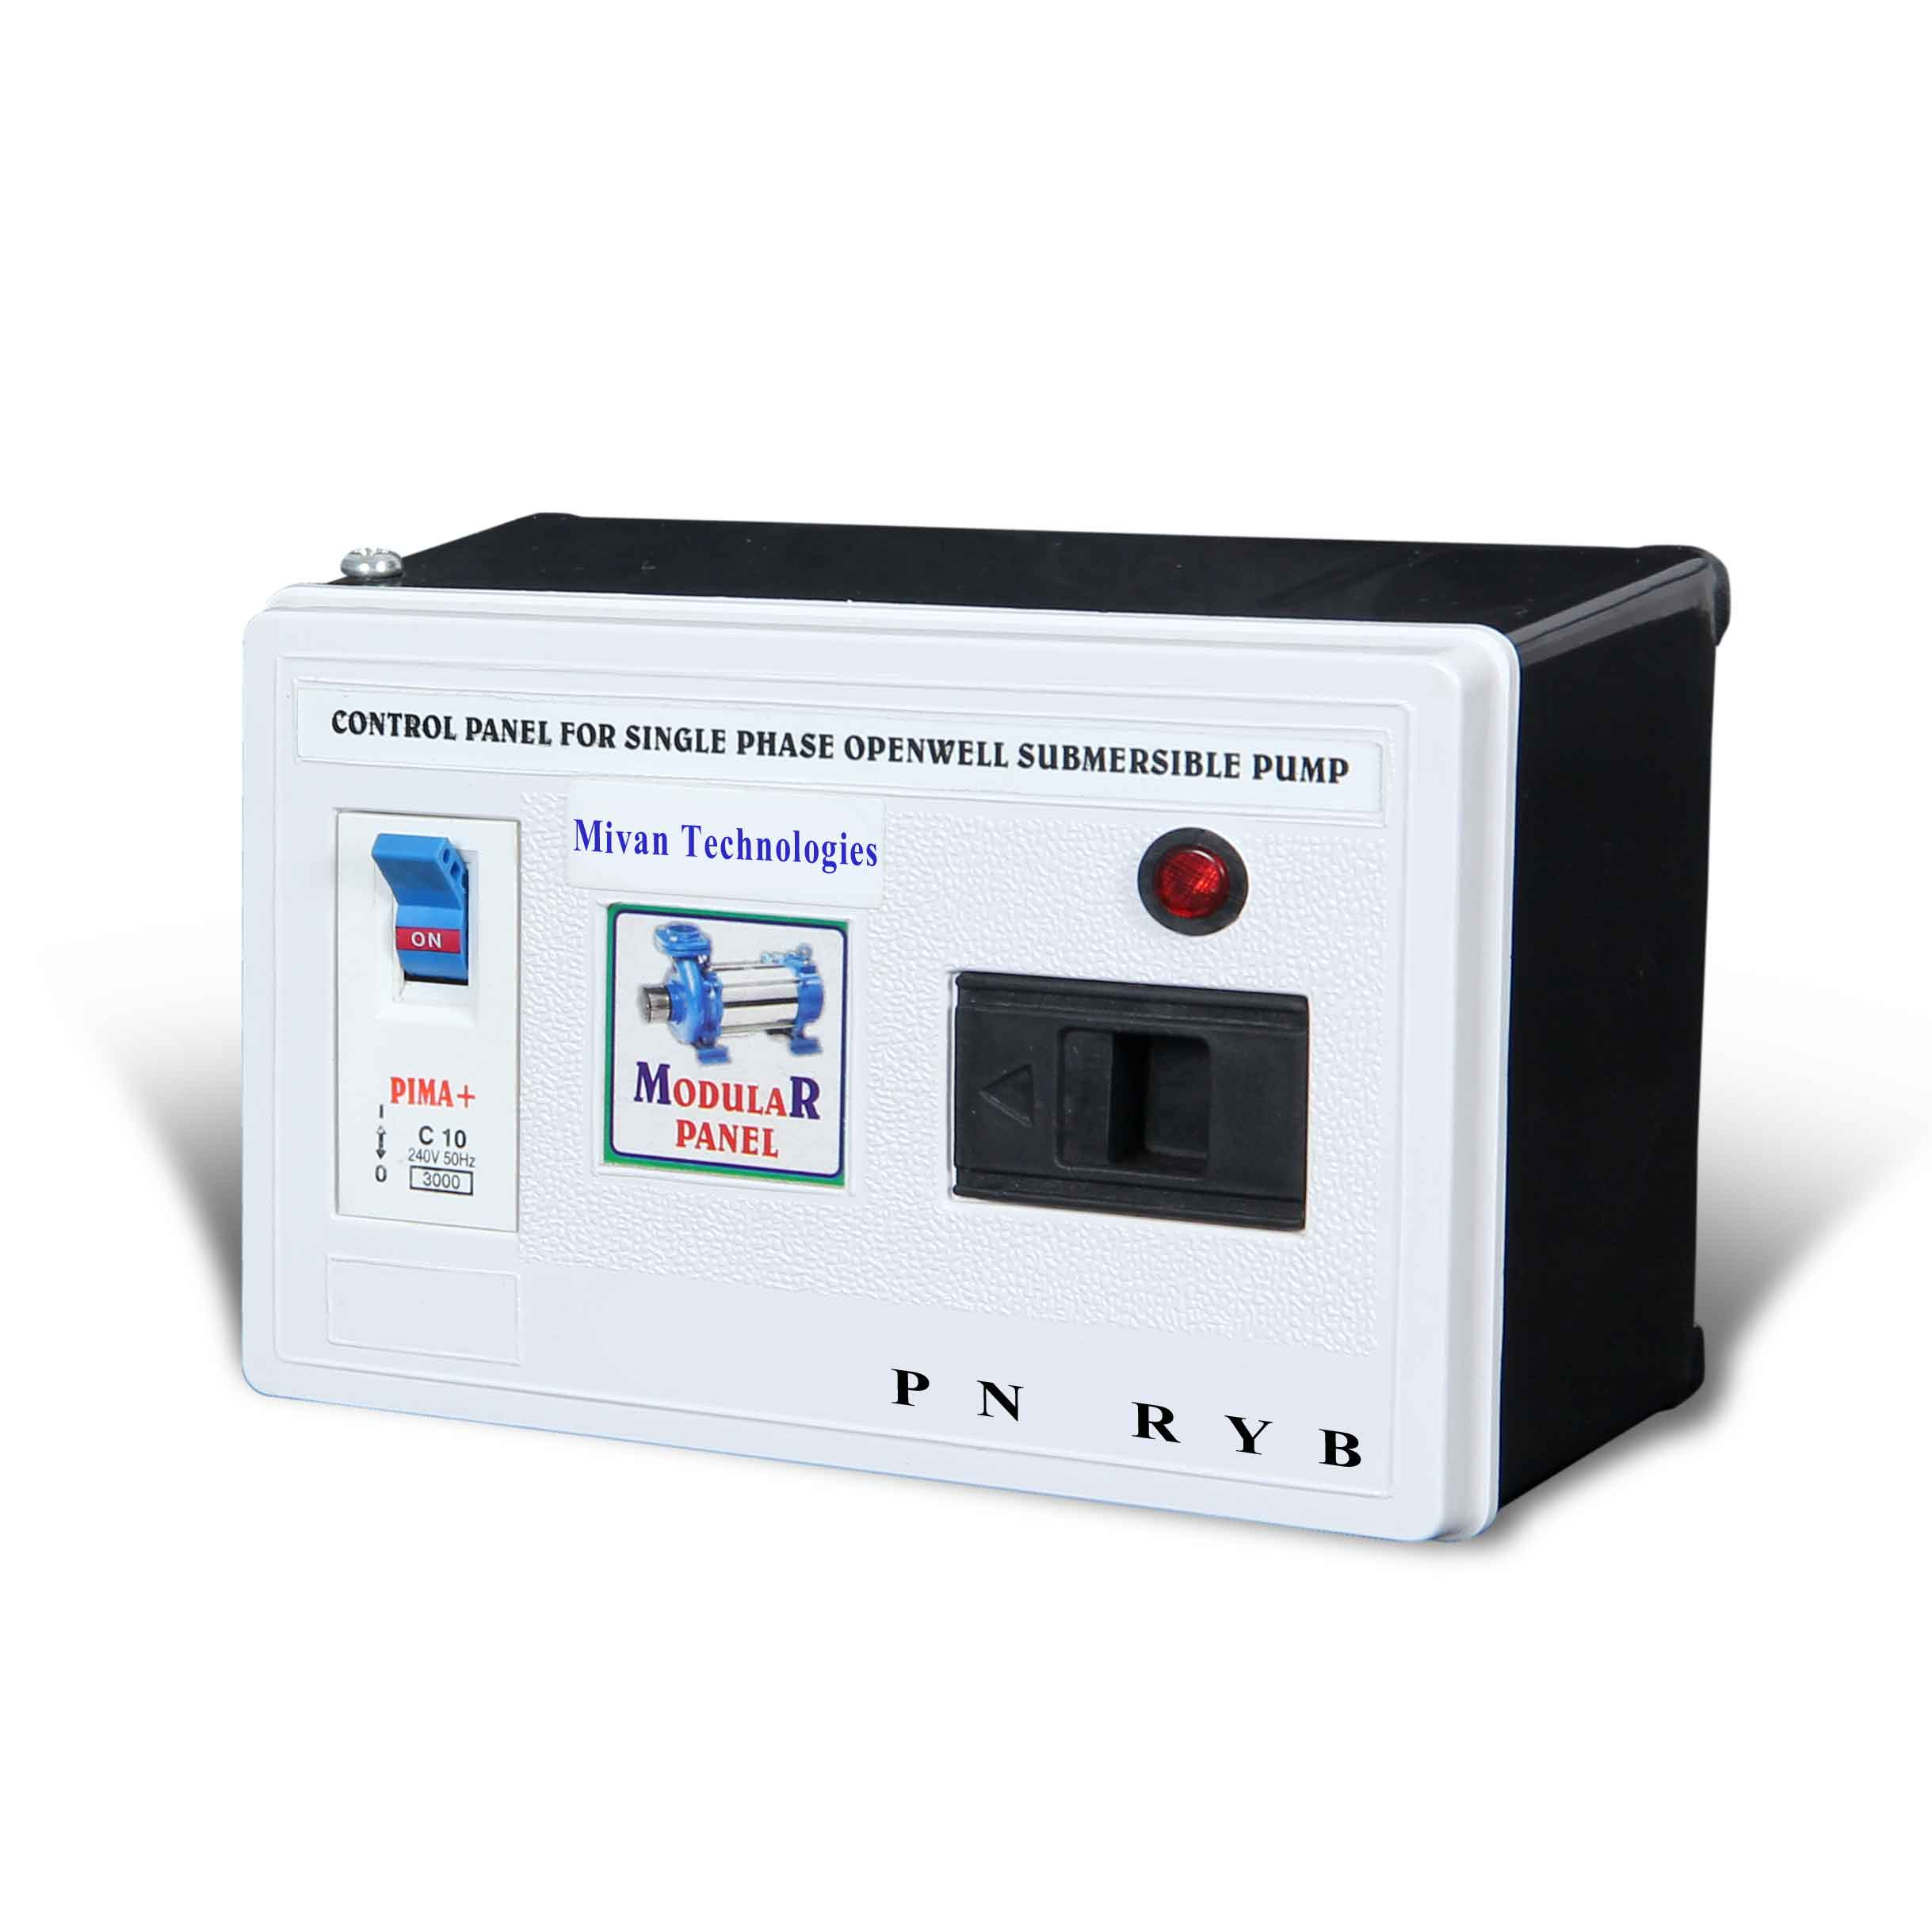 Single Phase motor starter suitable for all single phase submersible motor and pump